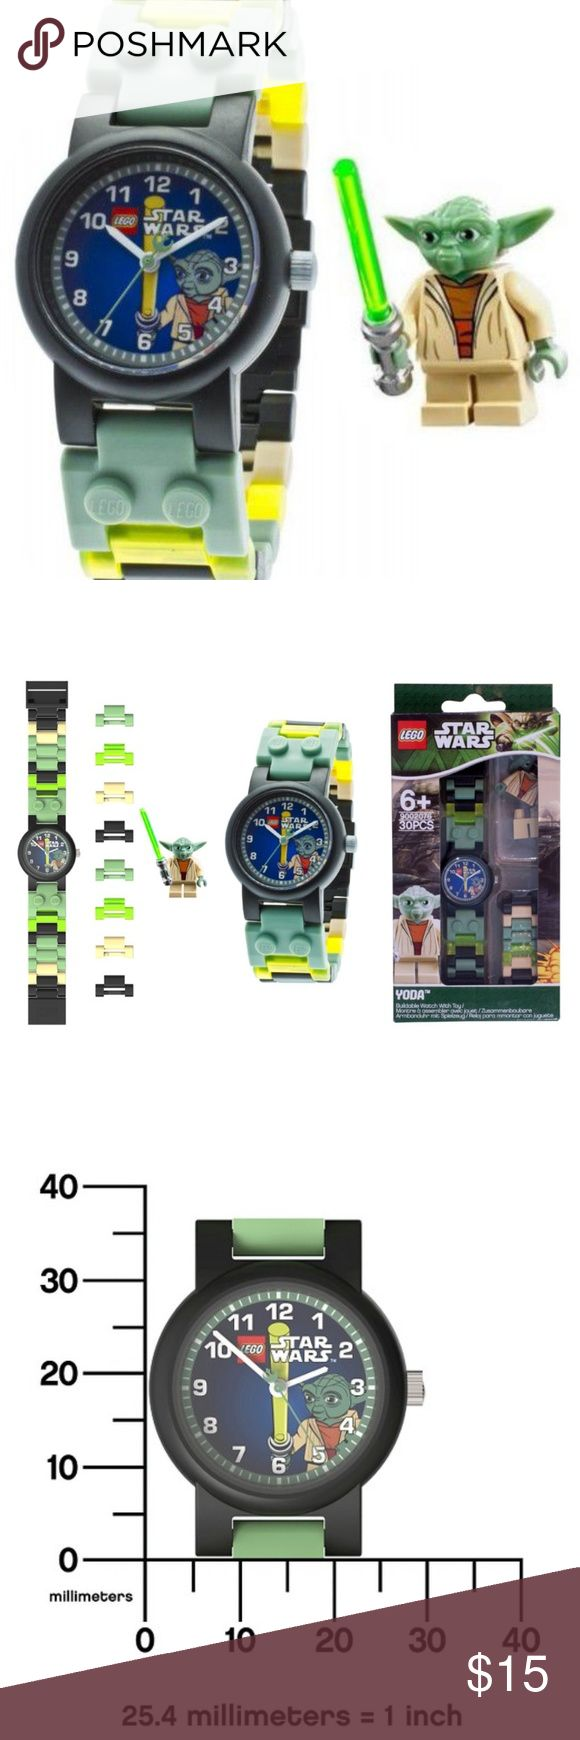 LEGO® Star Wars Watch with Minifigure- Yoda LEGO® Star Wars Watch with Minifigure- Yoda *Ages 6+ *Japanese Quartz movement. *Battery included. *Scratch resistant mineral crystal lens. *water resistant up to 165 feet (50 meters). *Includes authentic LEGO® minifigure. *Made in China  Brand new in original packaging. Lego Accessories Watches